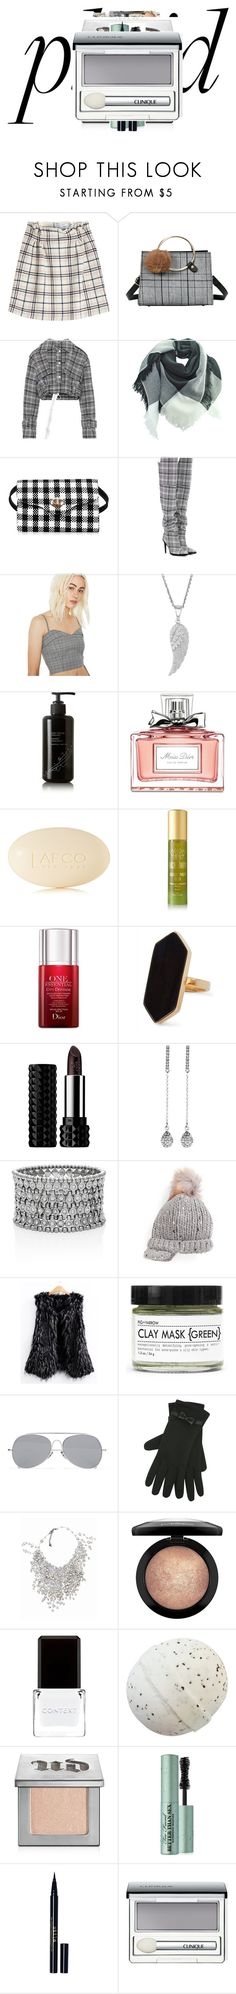 """""""Gray plaid"""" by knmaem on Polyvore featuring Carven, Off-White, re:named, Kahina Giving Beauty, Christian Dior, LAFCO, Tracie Martyn, Jaeger, Kat Von D and Love Rocks"""